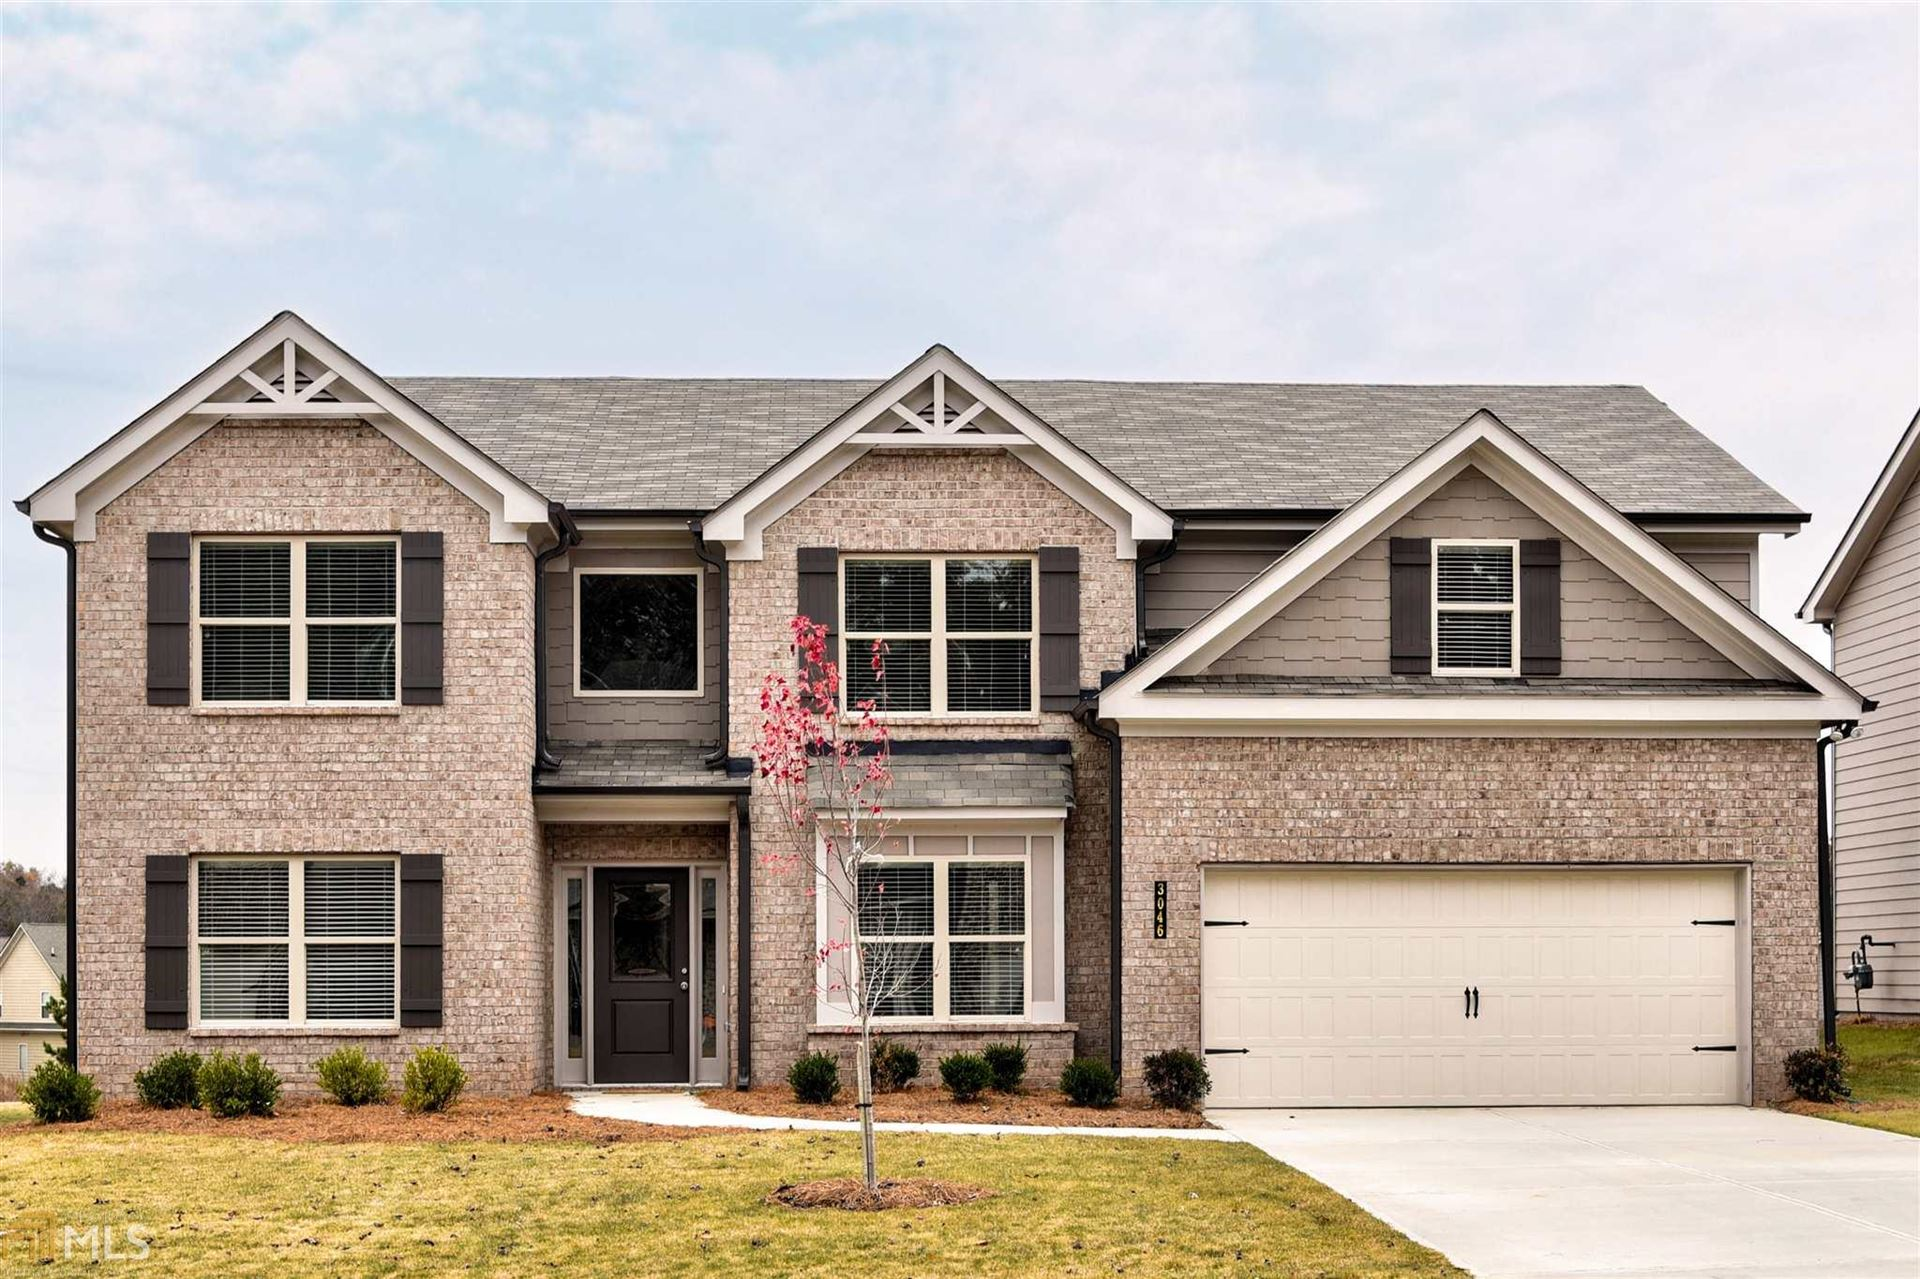 6065 Fair Winds Cv, Flowery Branch, GA 30542 - #: 8849903